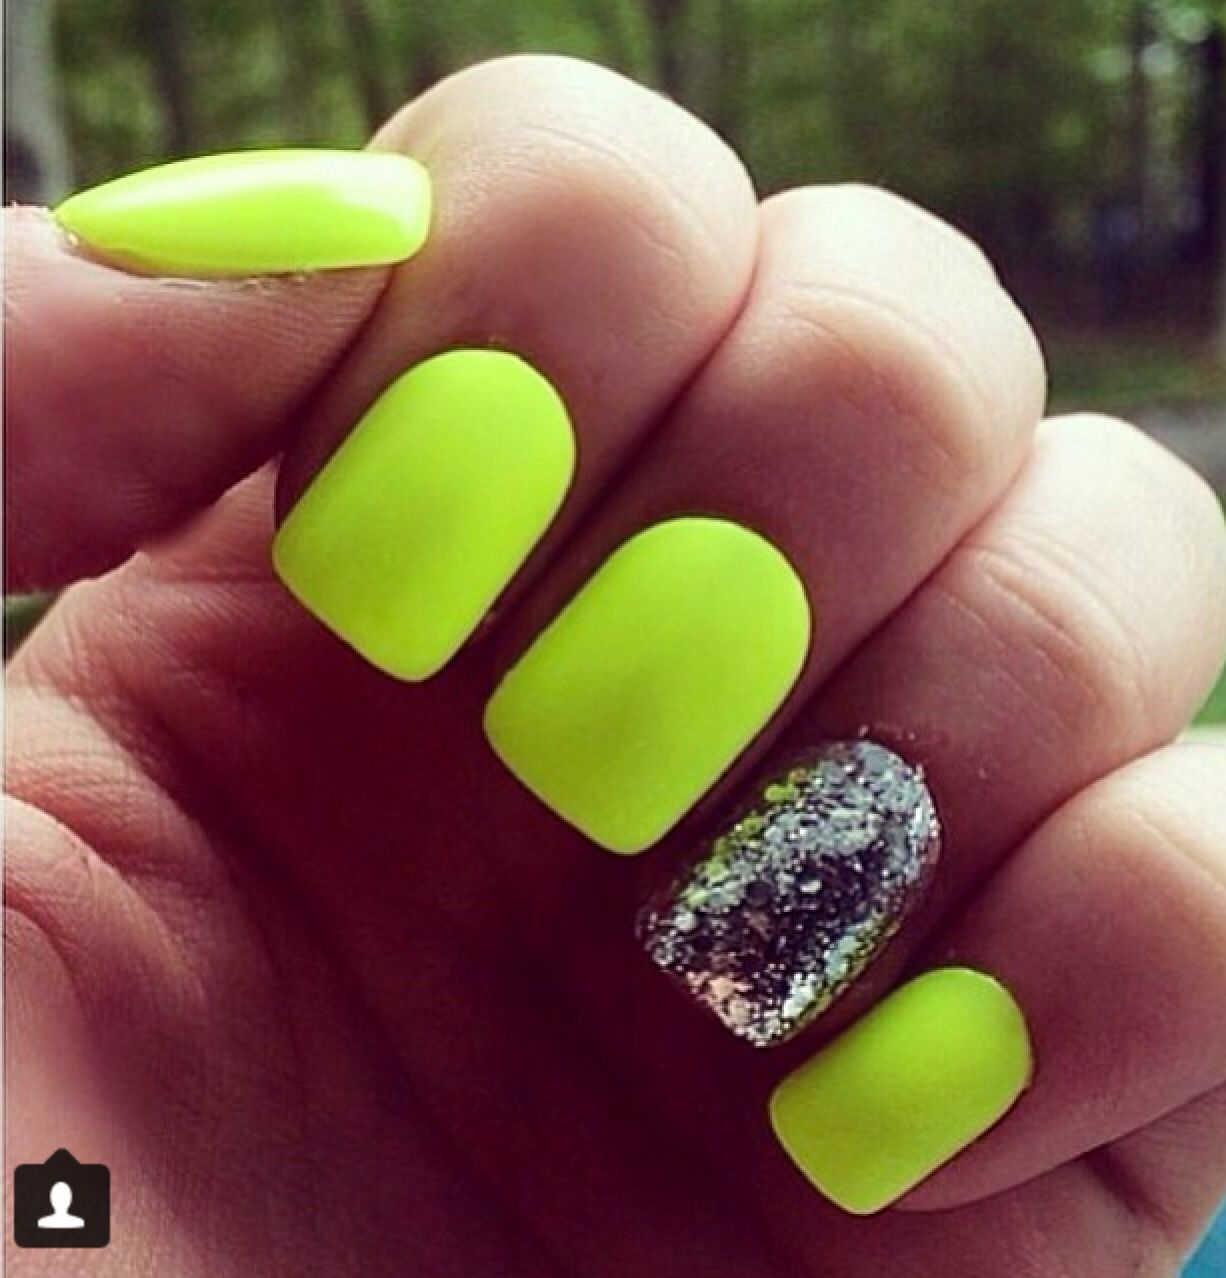 Neon yellow nails | Nails Ideas | Pinterest | Neon yellow nails ...